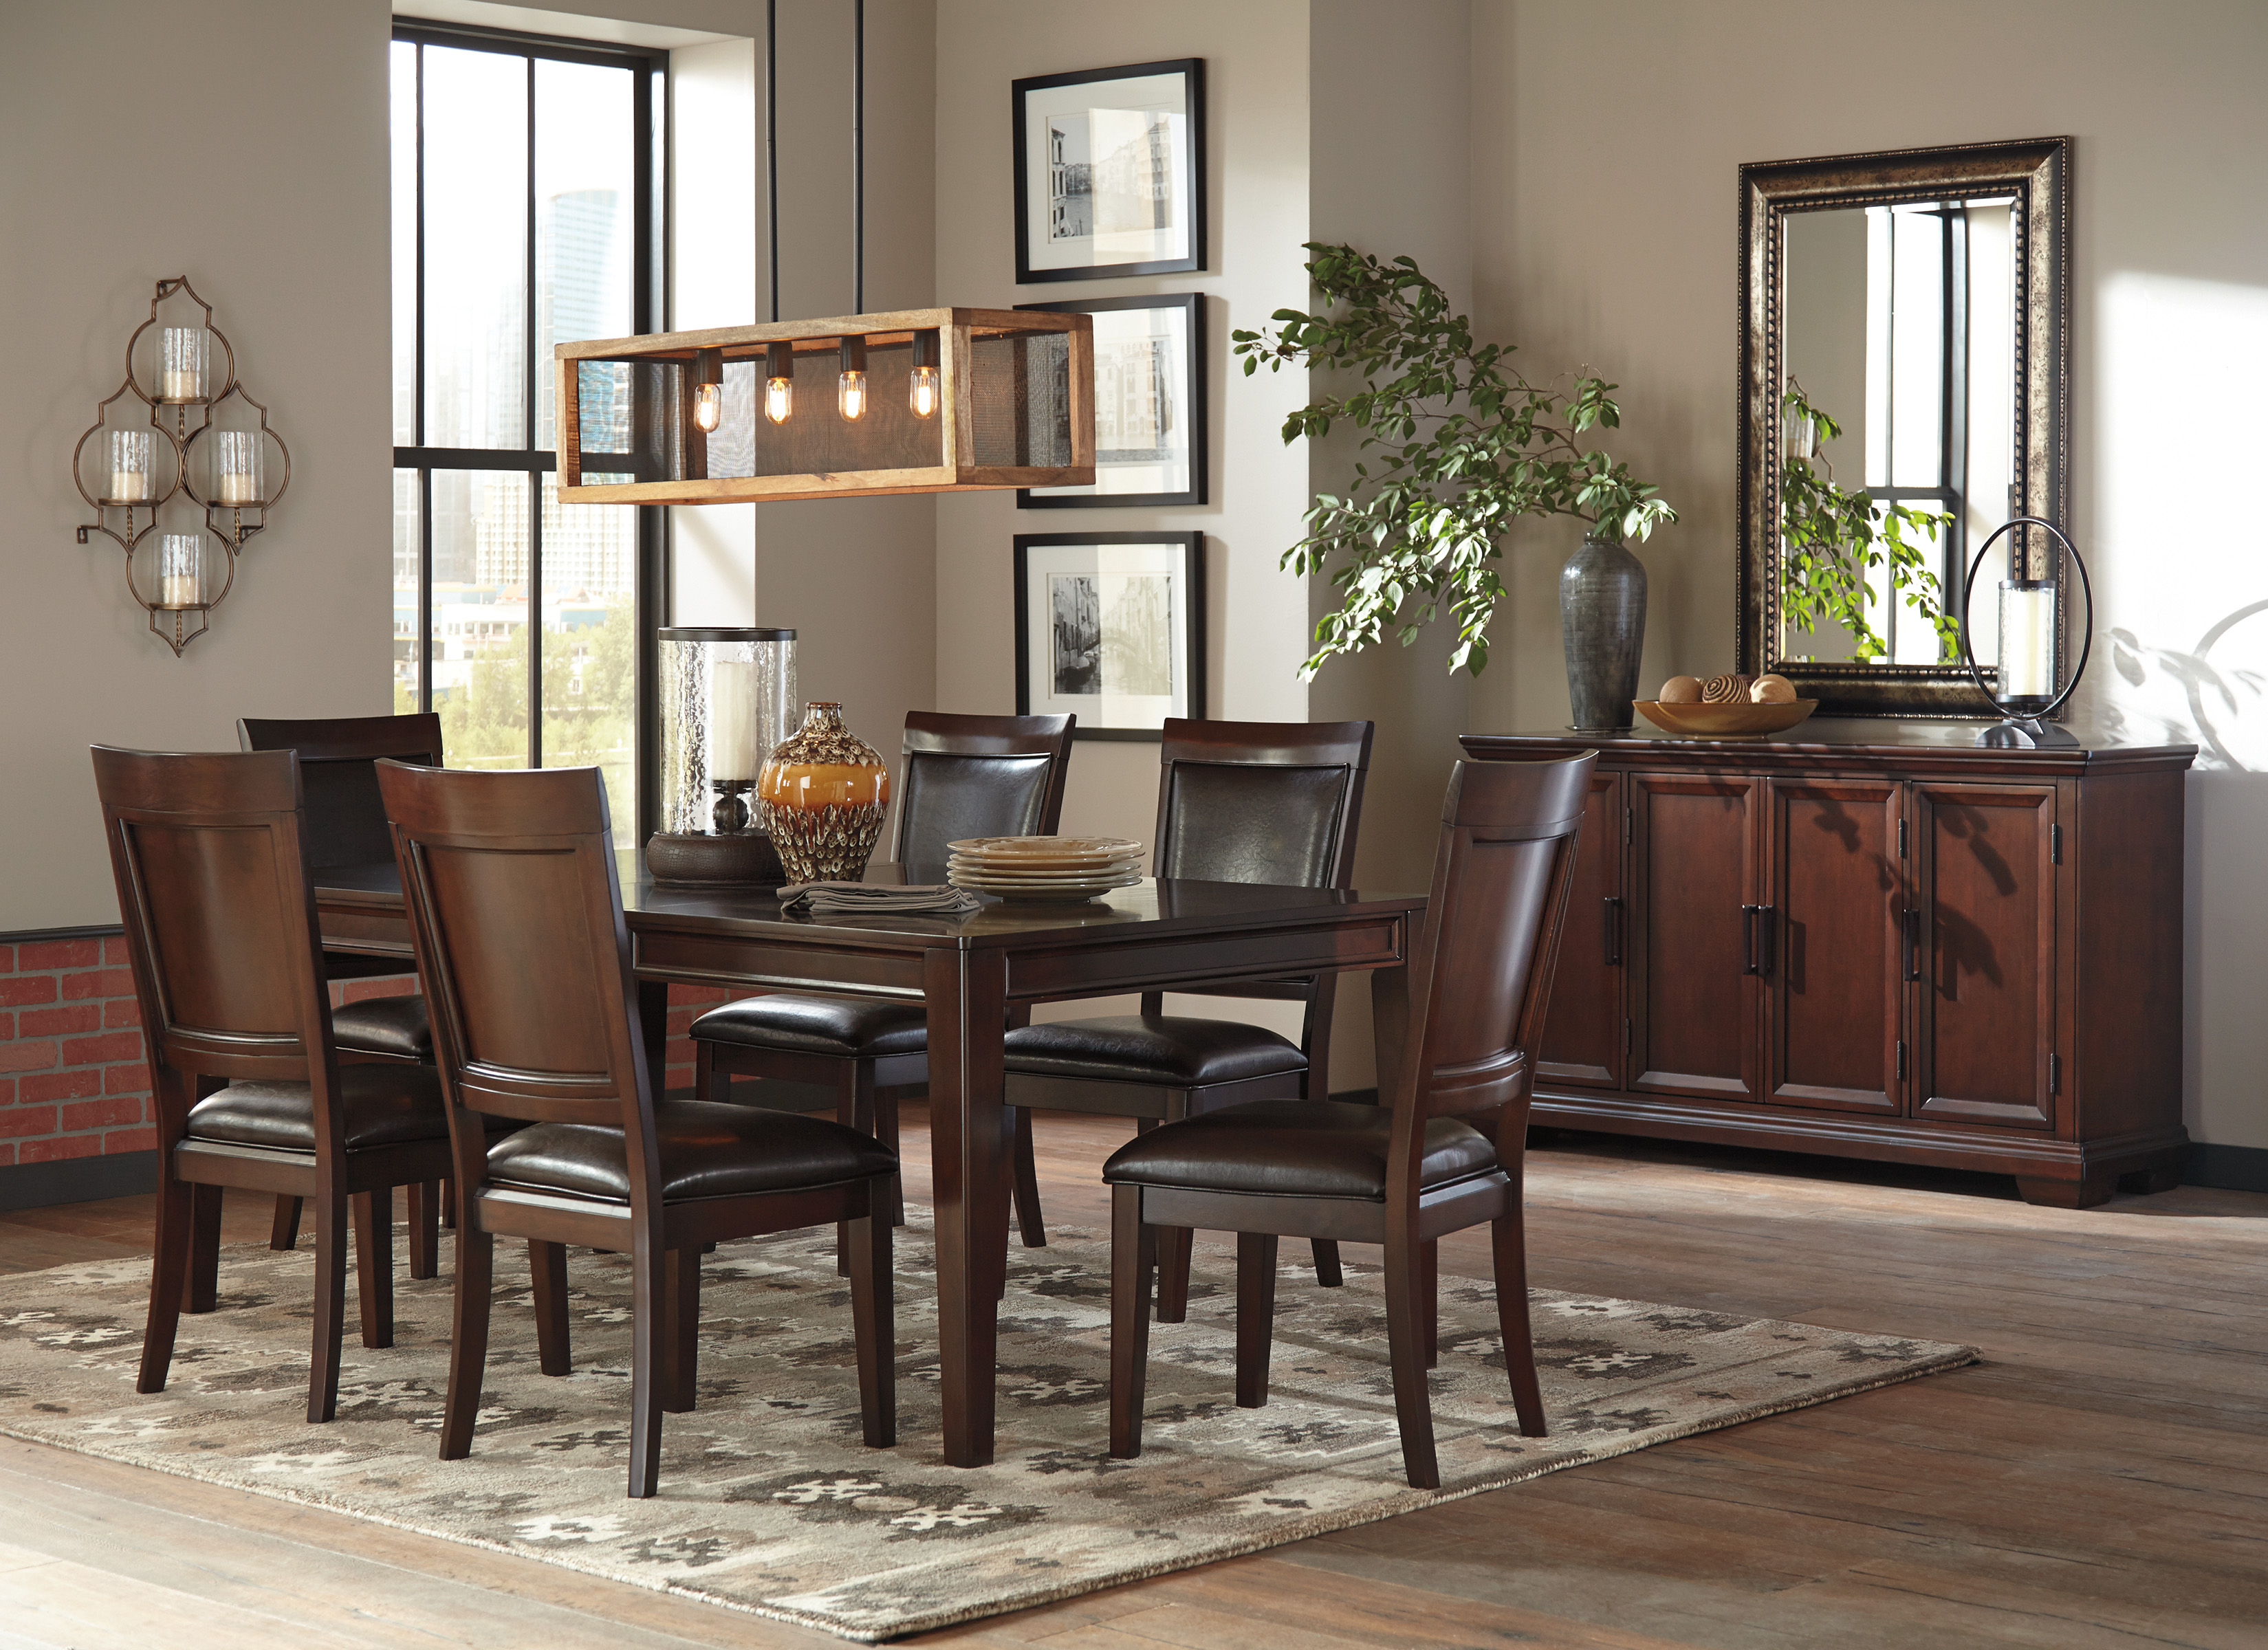 ashley shadyn 7 piece casual dining room set in a warm brown finish w removable 18 extension. Black Bedroom Furniture Sets. Home Design Ideas